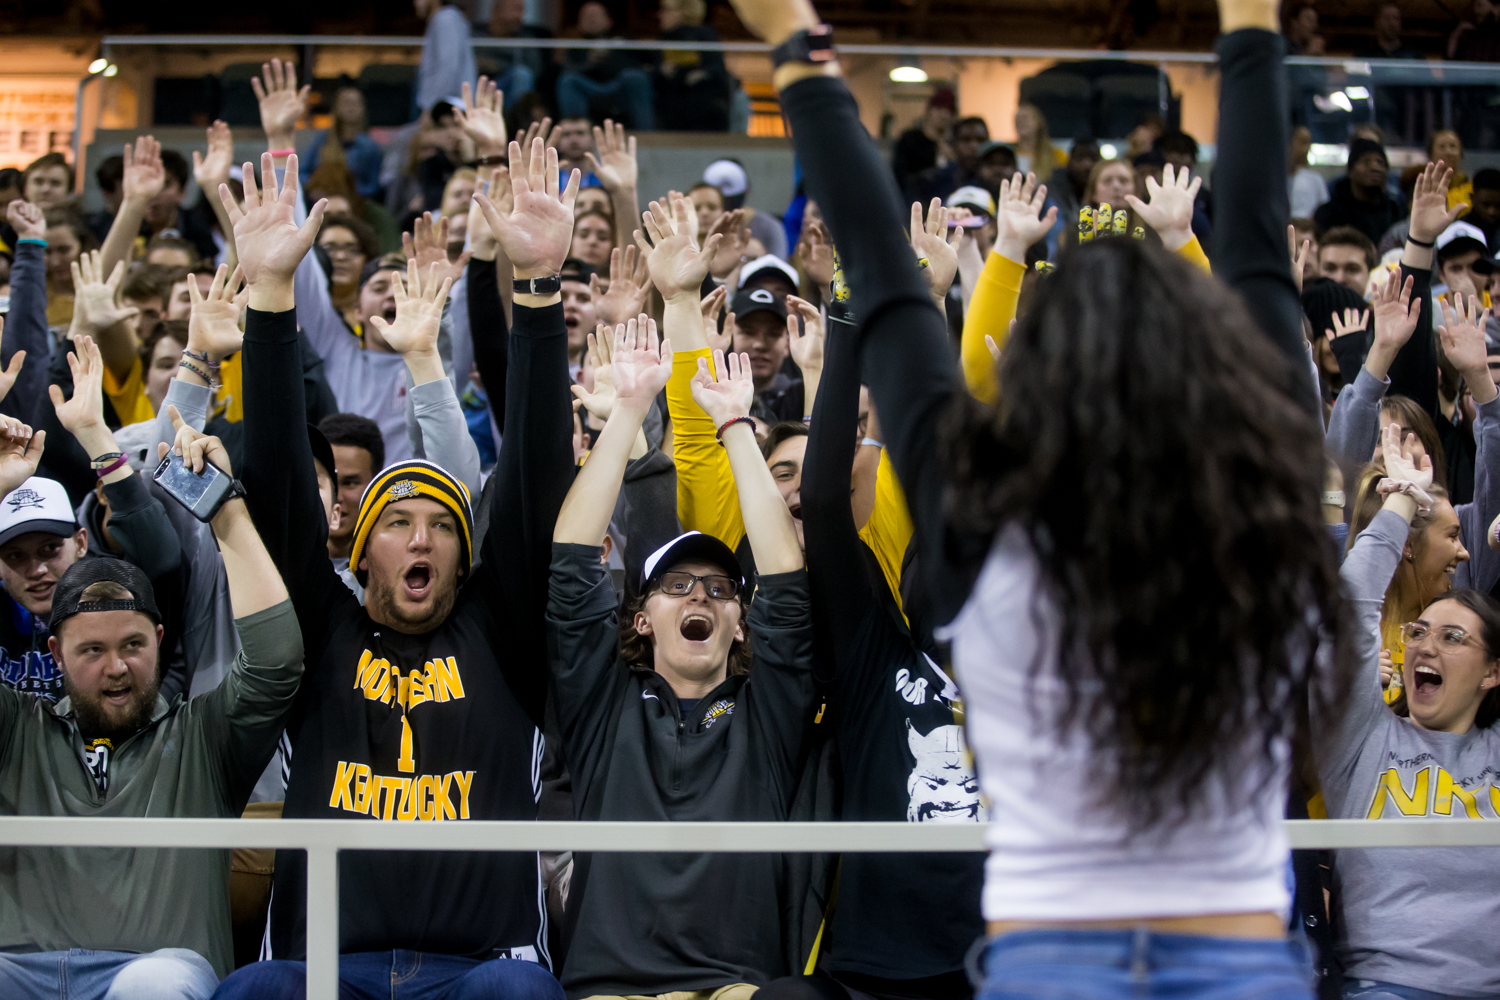 NKU fans cheer during the game against UNC Asheville.